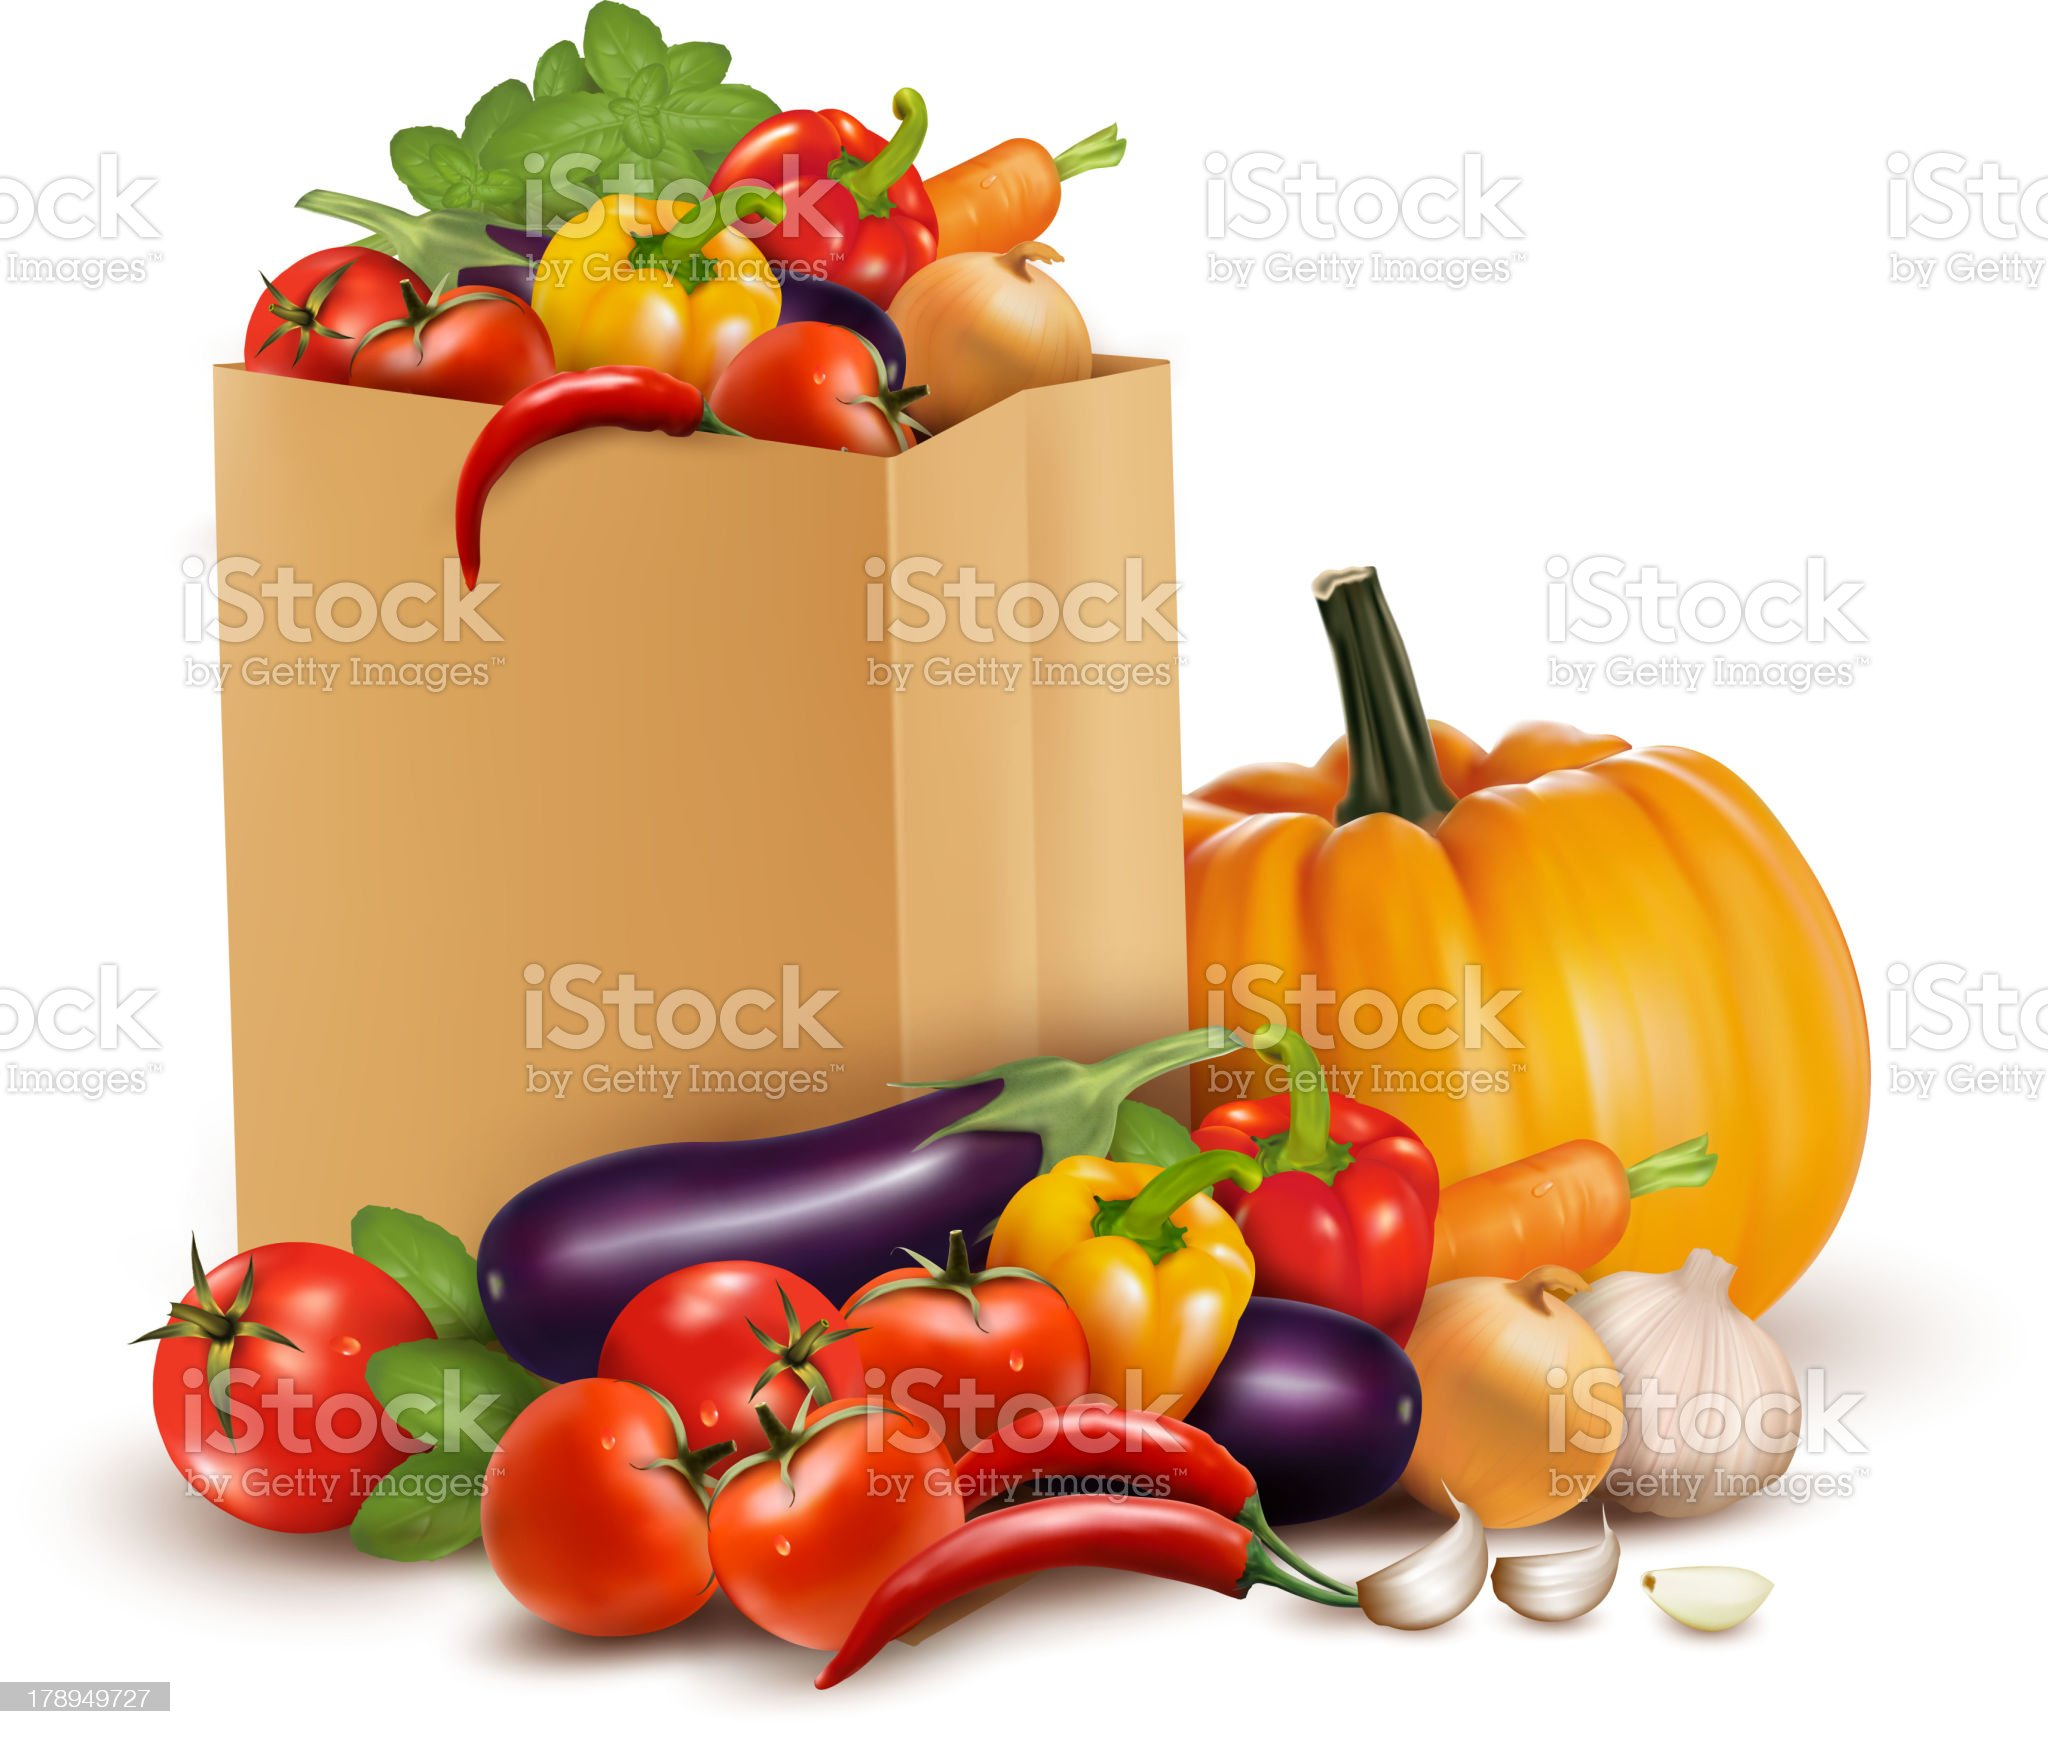 Background with fresh vegetables in paper bag. royalty-free stock vector art